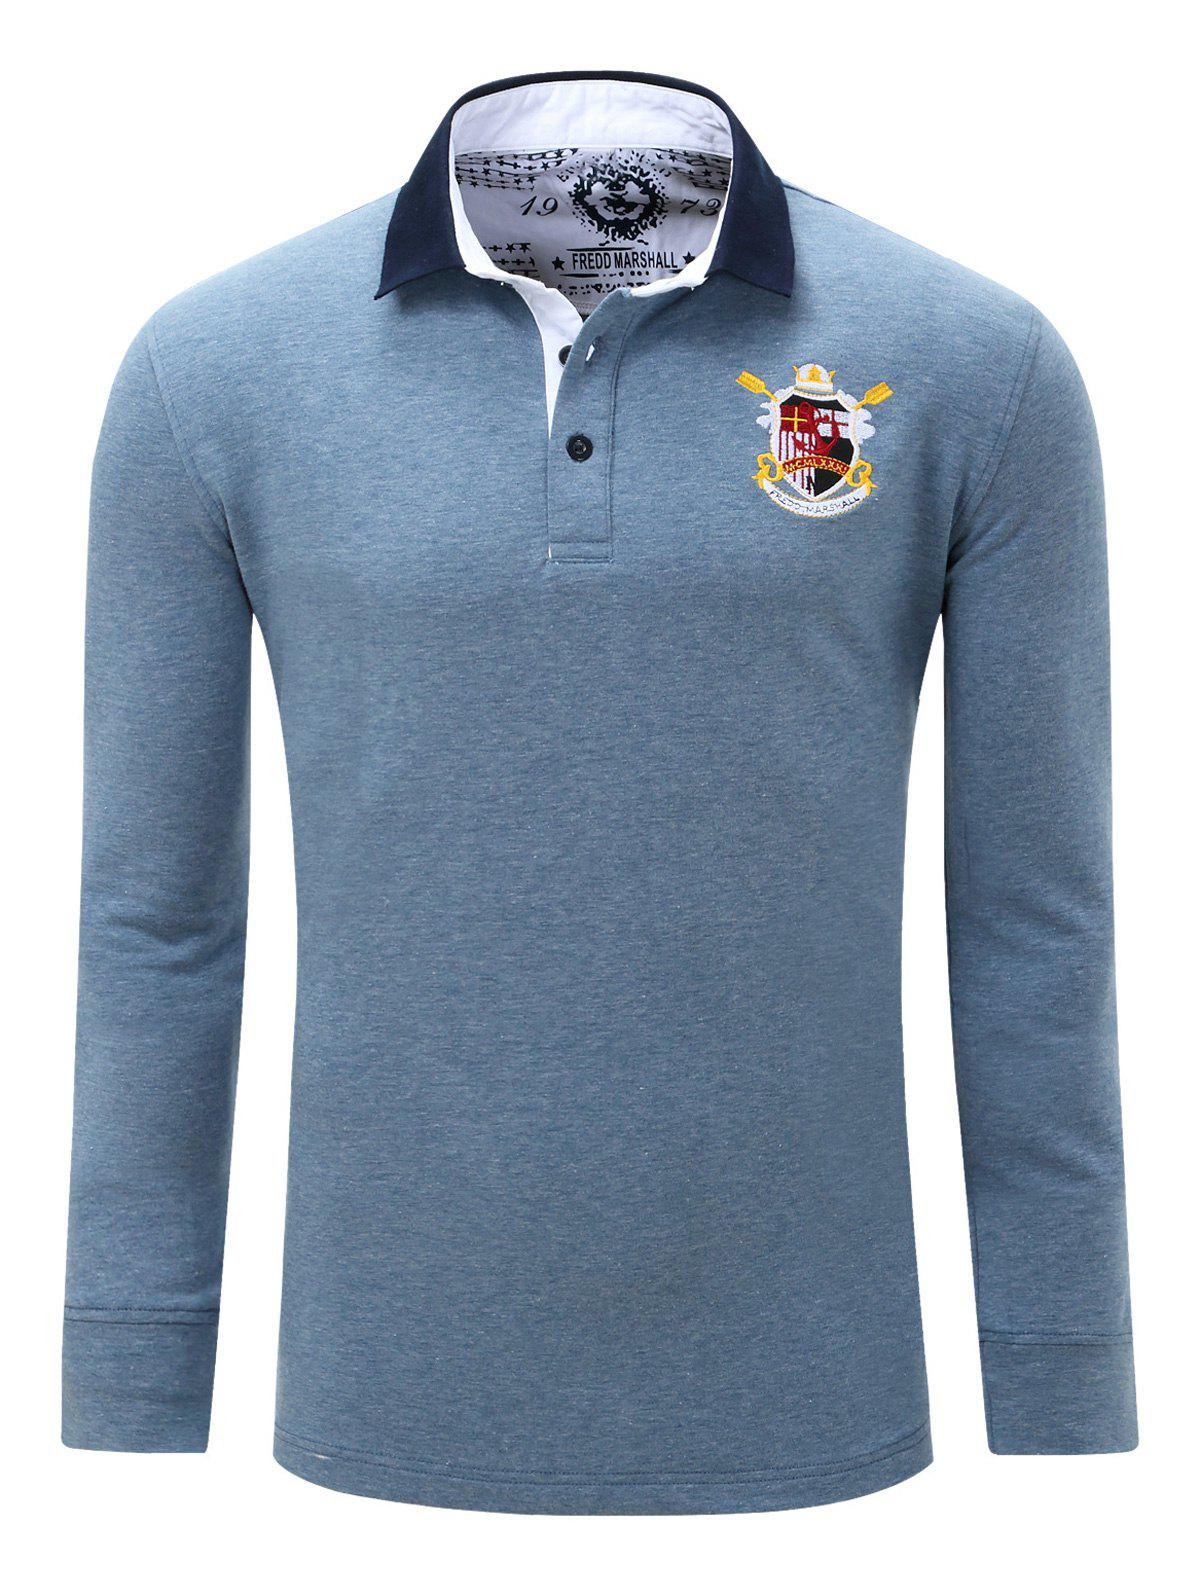 Turn Down Collar Embroidered Patch Men's Long Sleeve Polo Shirt